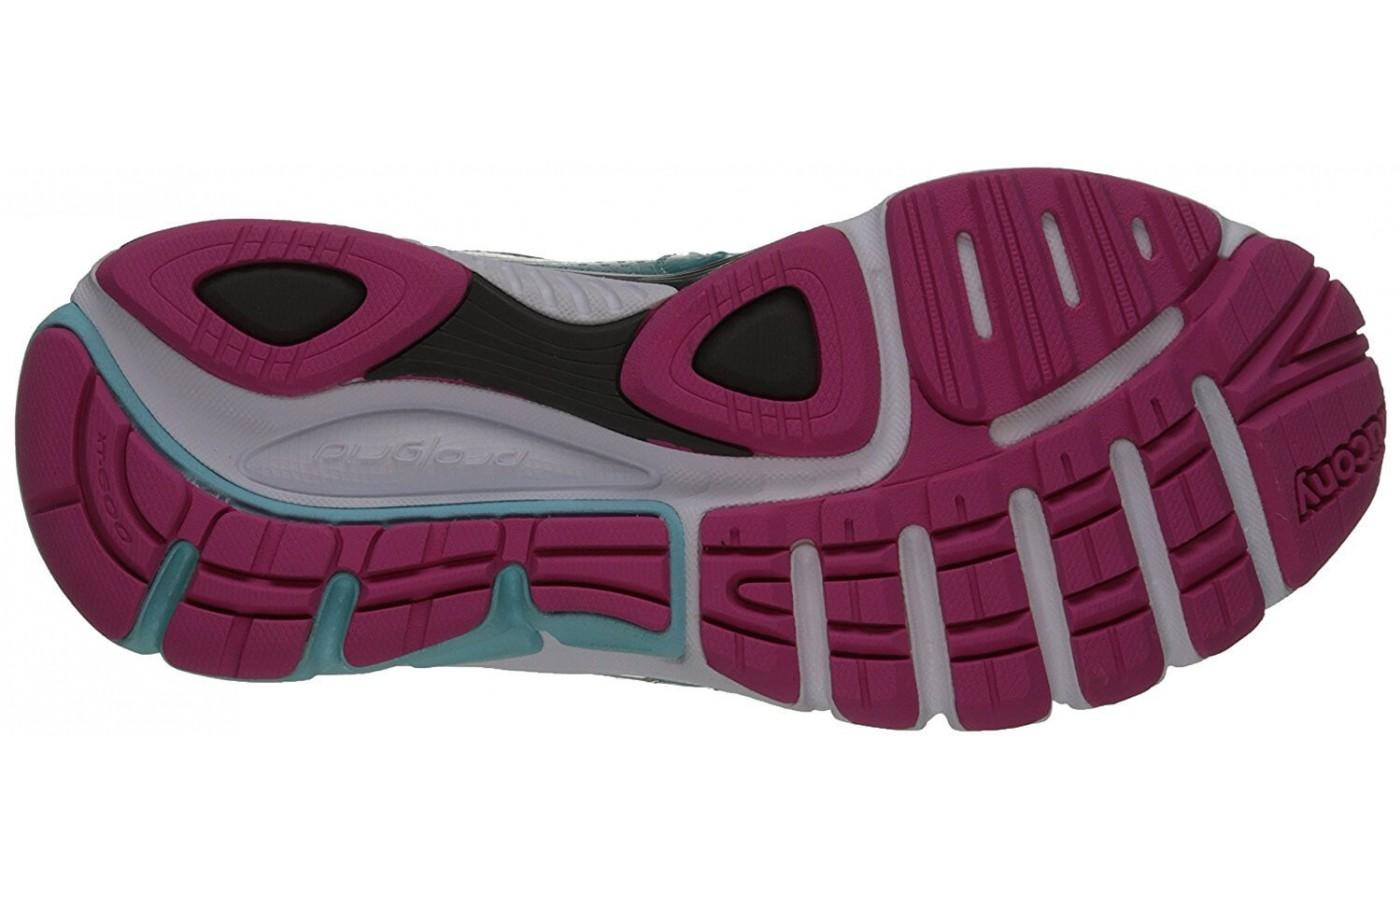 The high abrasion rubber outsole provides added traction.